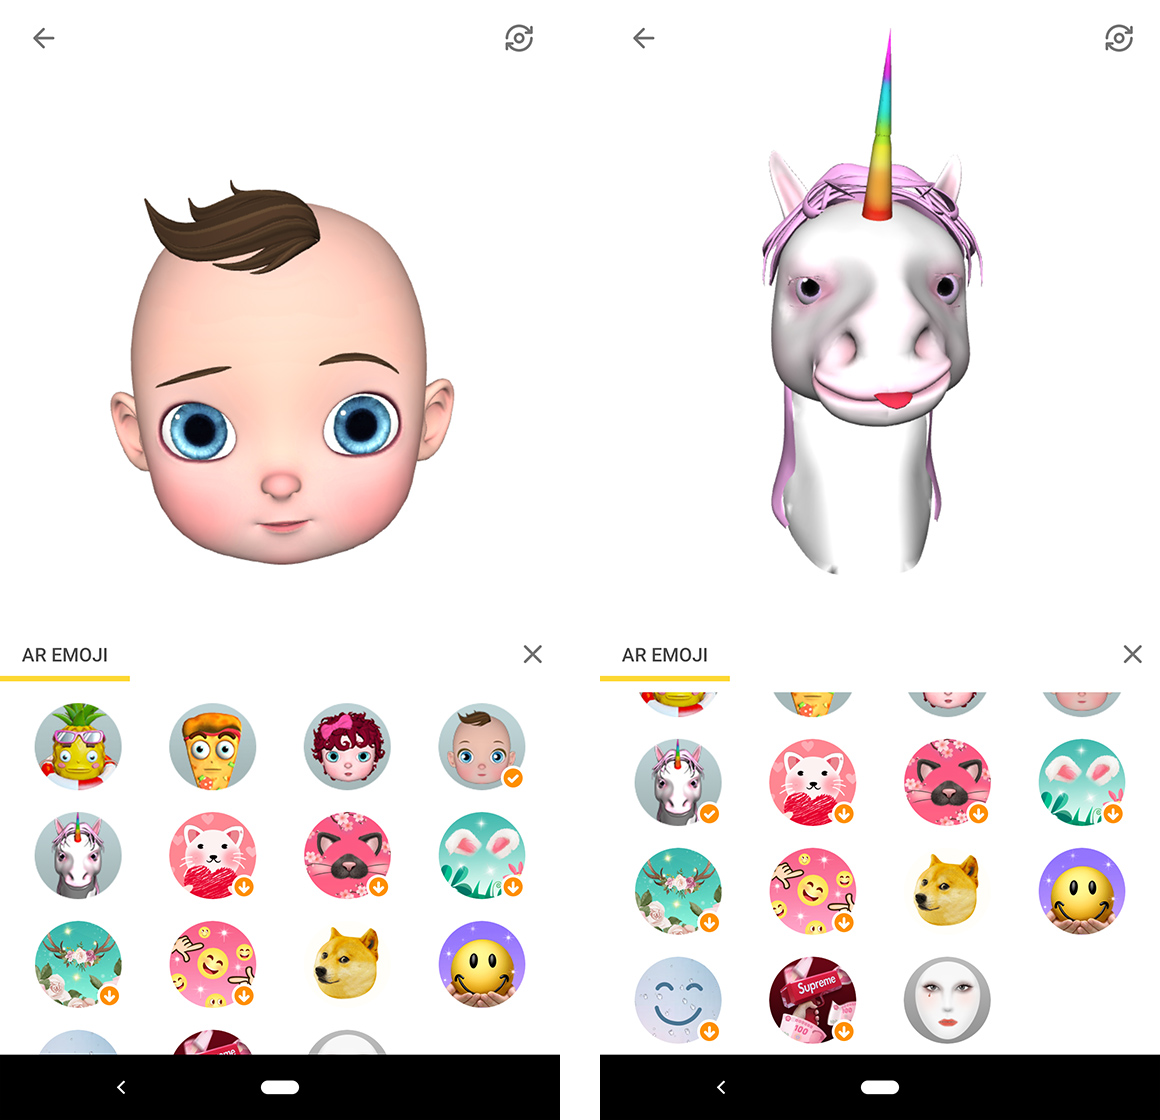 Baby and unicorn AR emoji from Facemoji